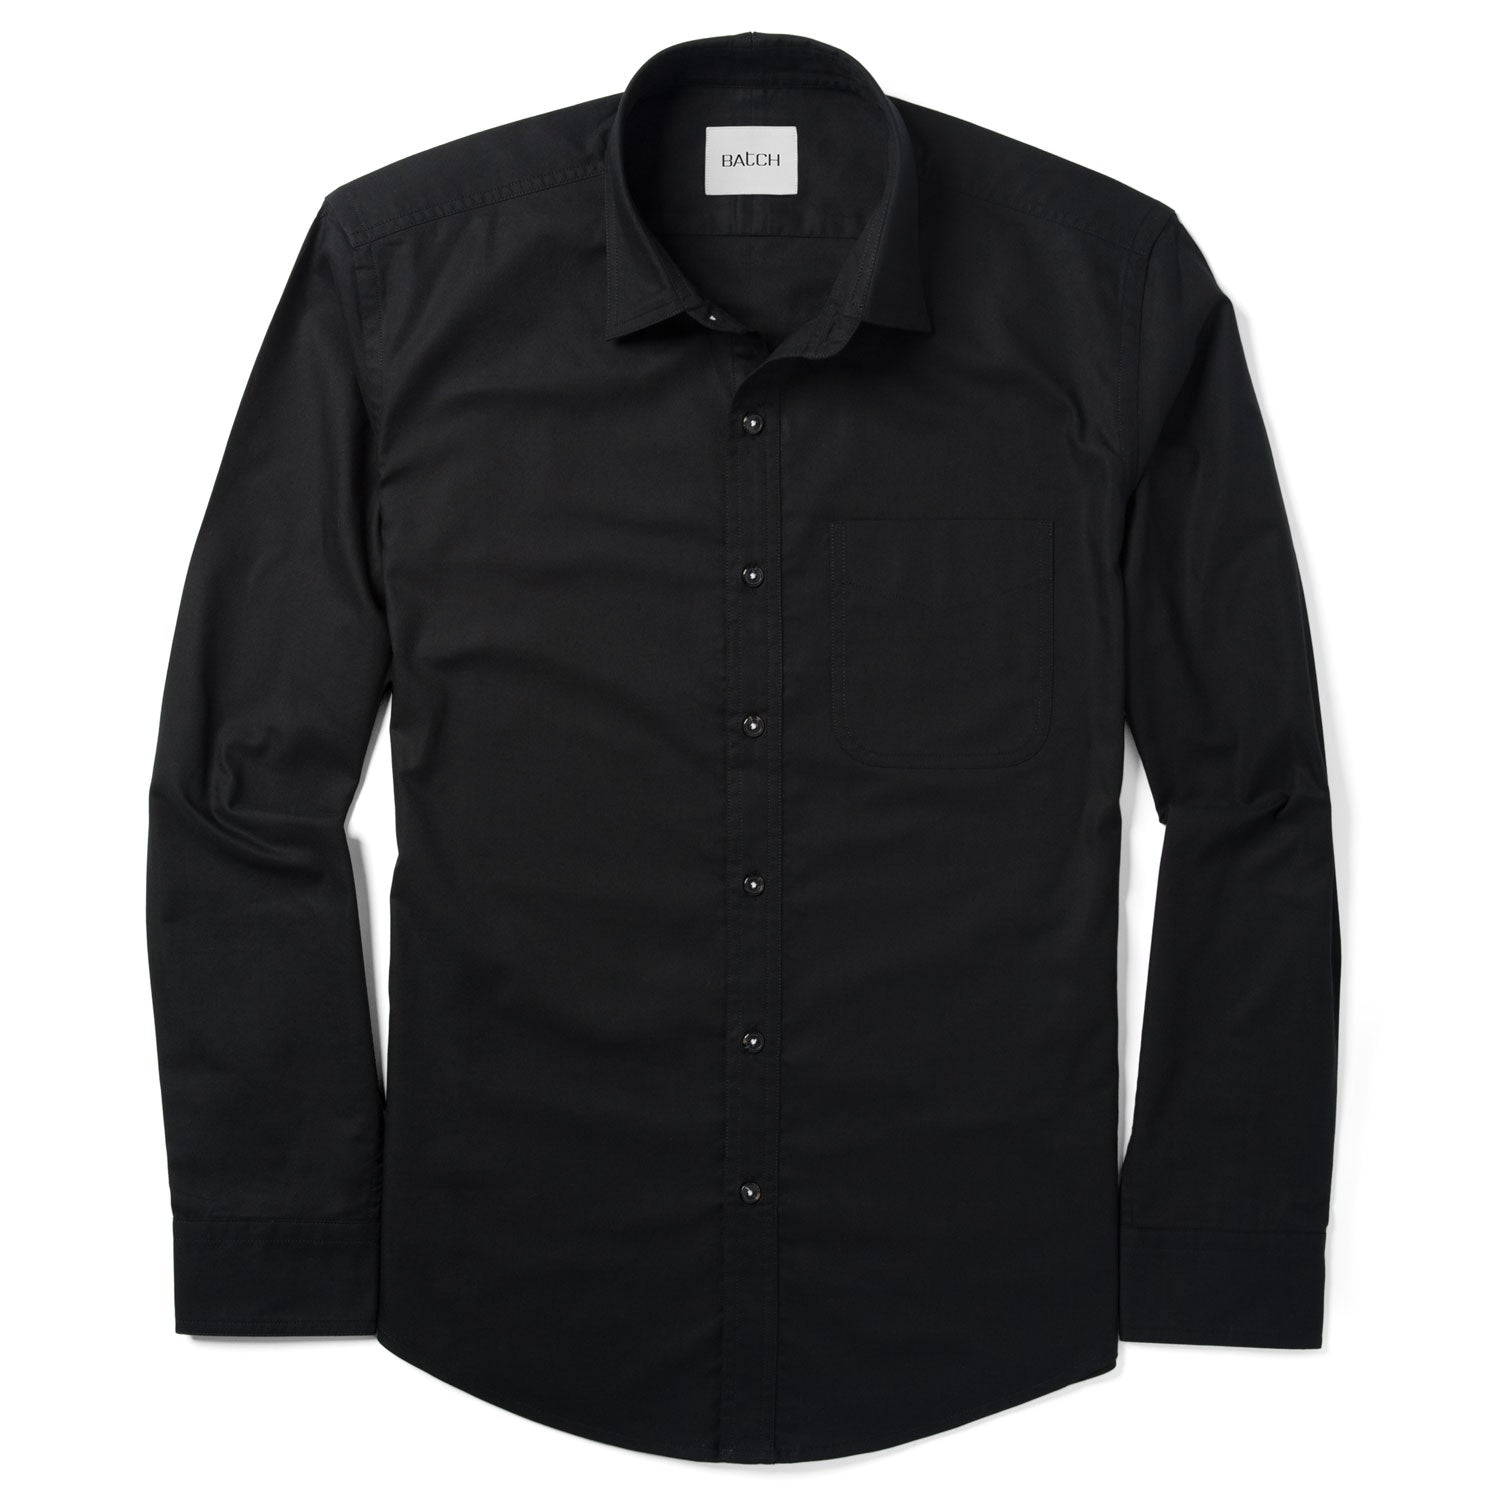 Essential Shirt Spread Collar WSB - Jet Black Cotton Oxford